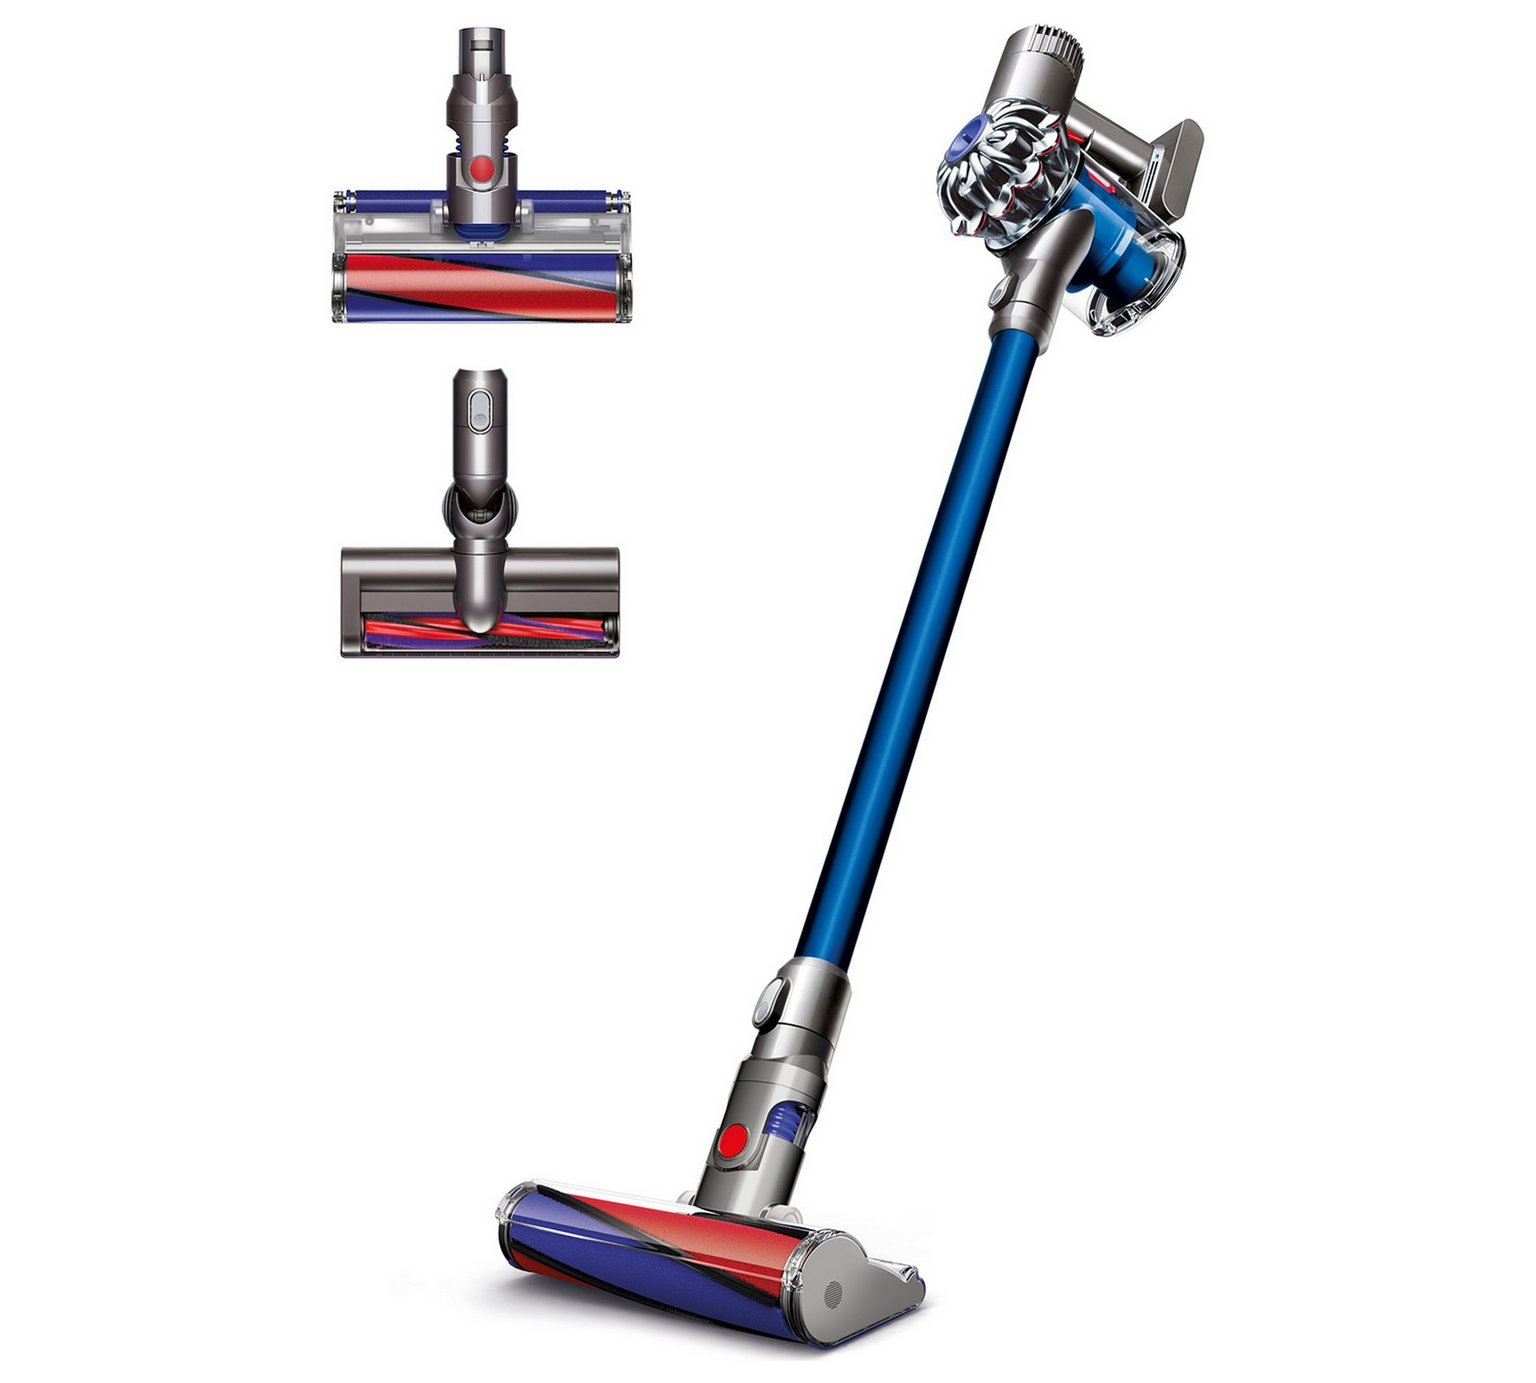 Best Dyson Hoover Deals And Offers Compare Best Buys